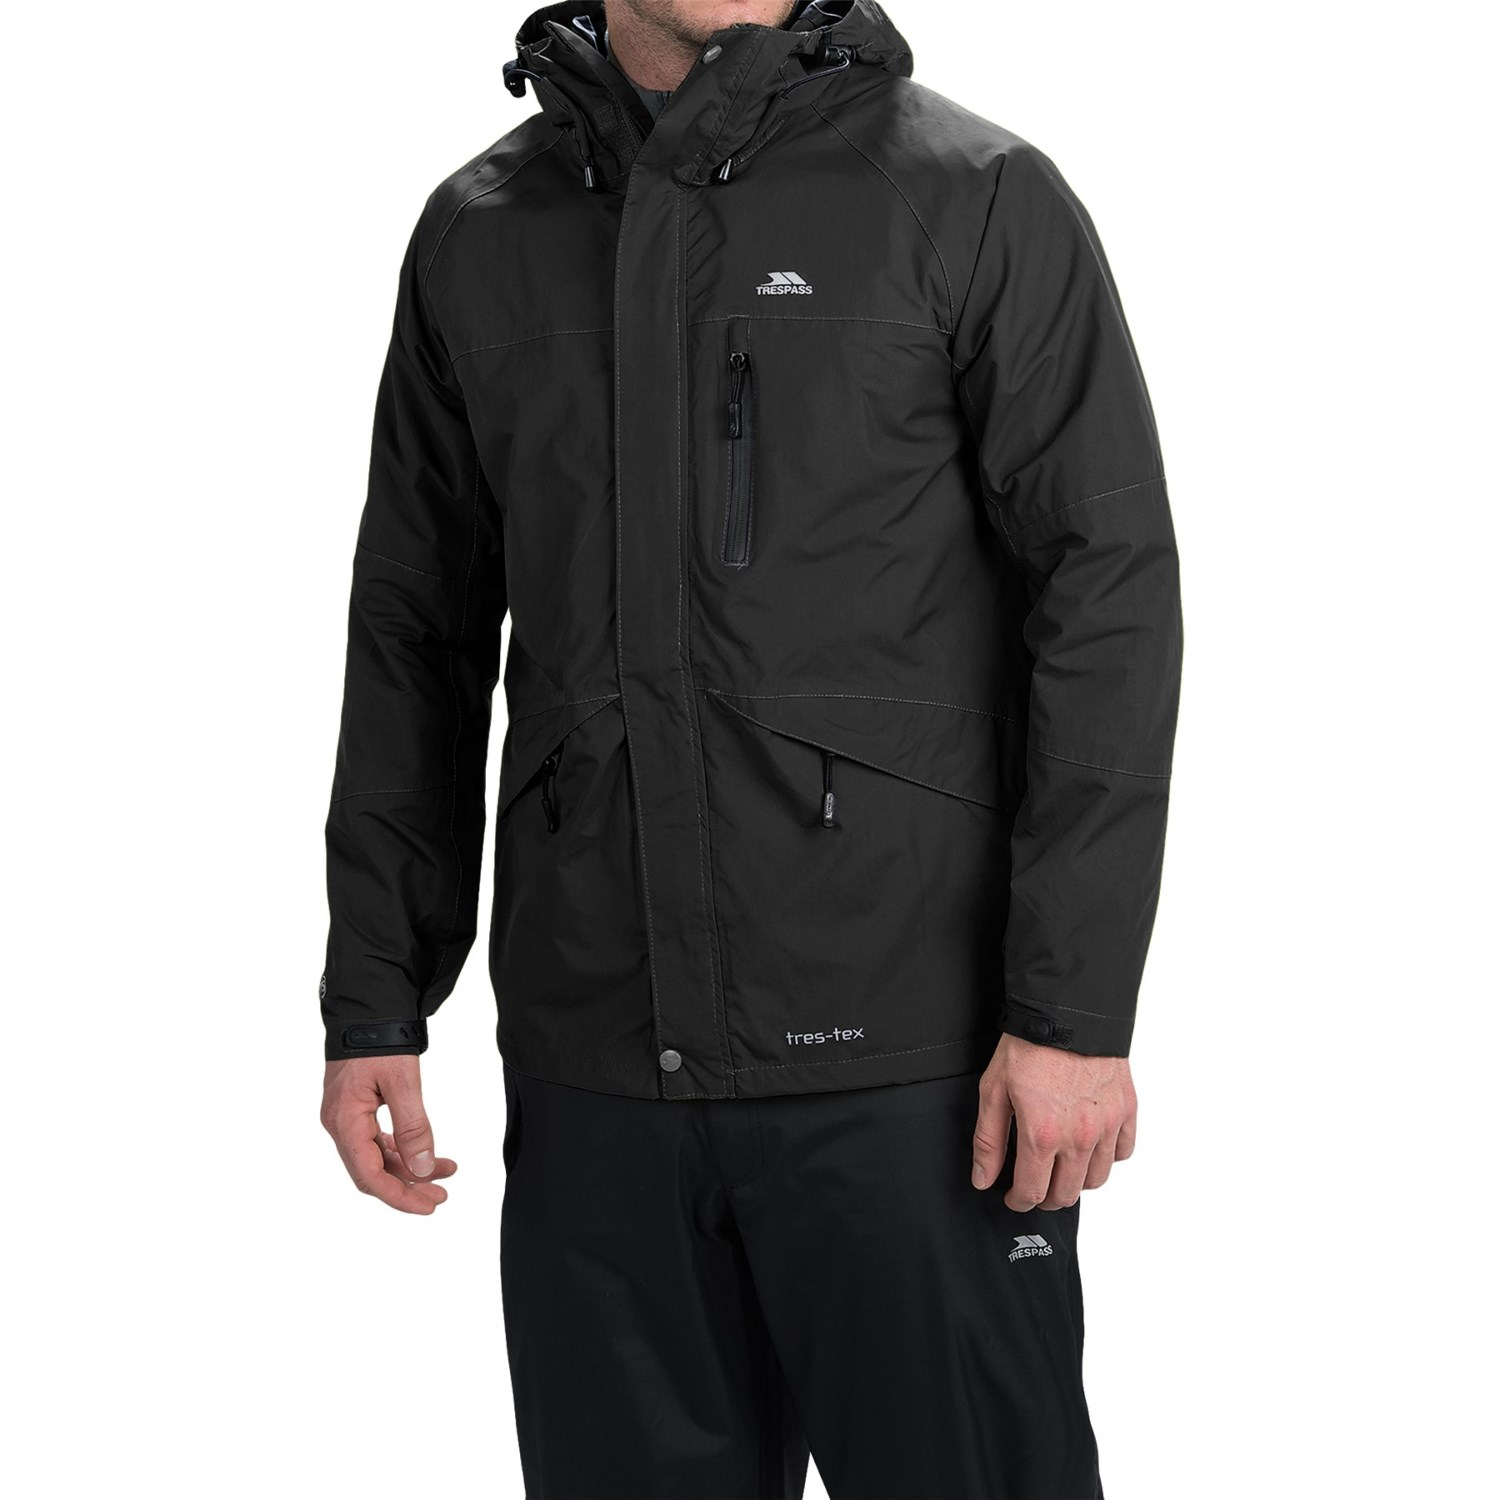 Rain Jacket Waterproof Coat Nj